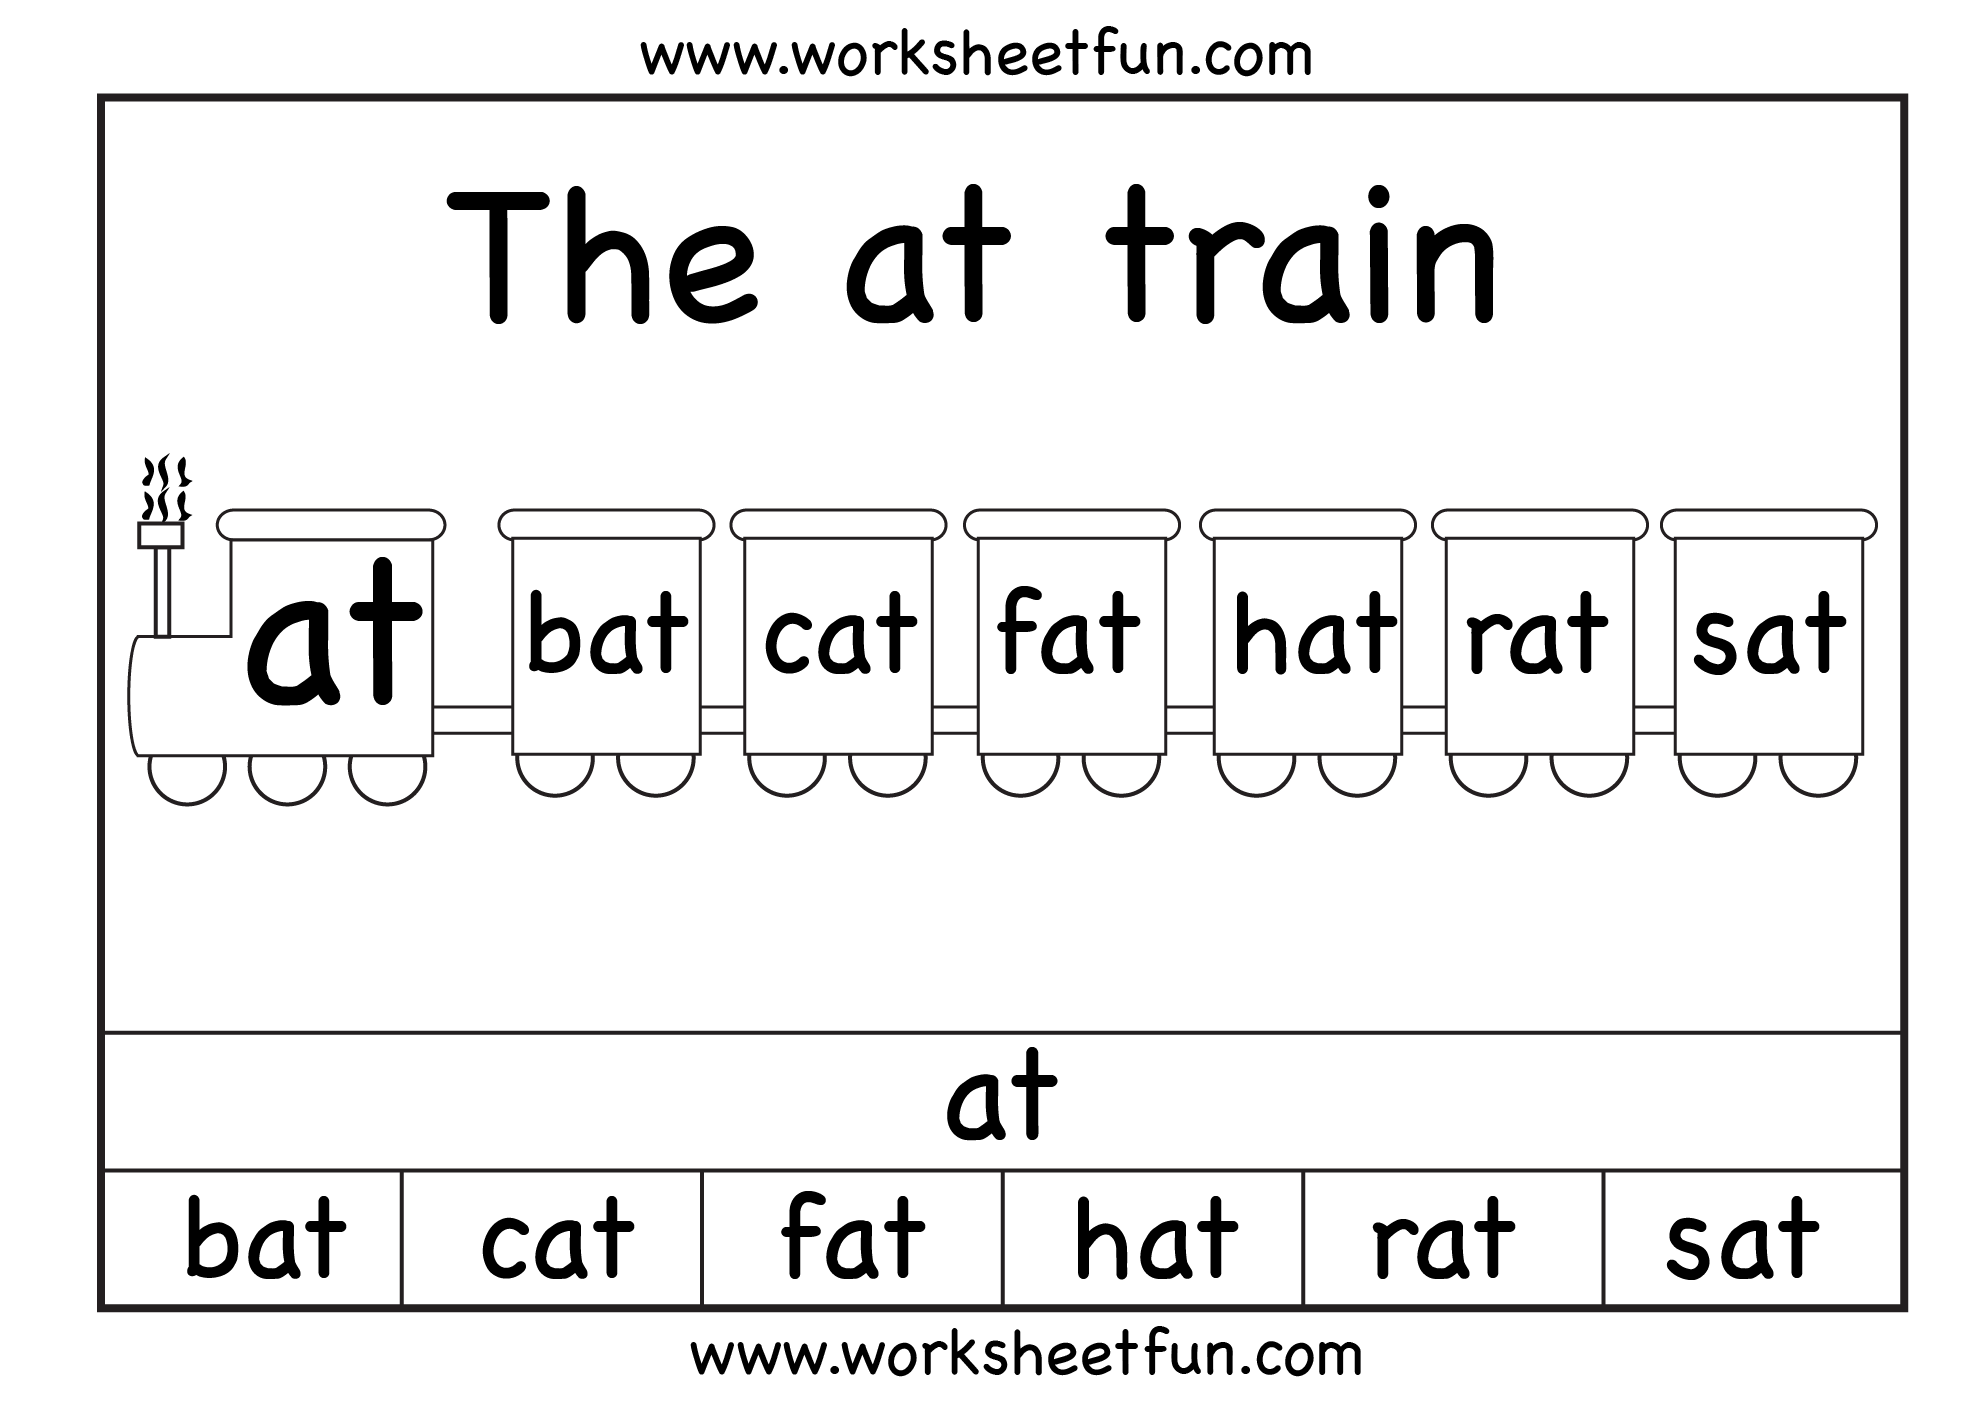 Worksheets Rhyming Words Worksheets For Kindergarten at word family printable worksheets pinterest kindergarten preschool freefree worksheetspreschool activitieskindergarten centerskindergarten readingrhym